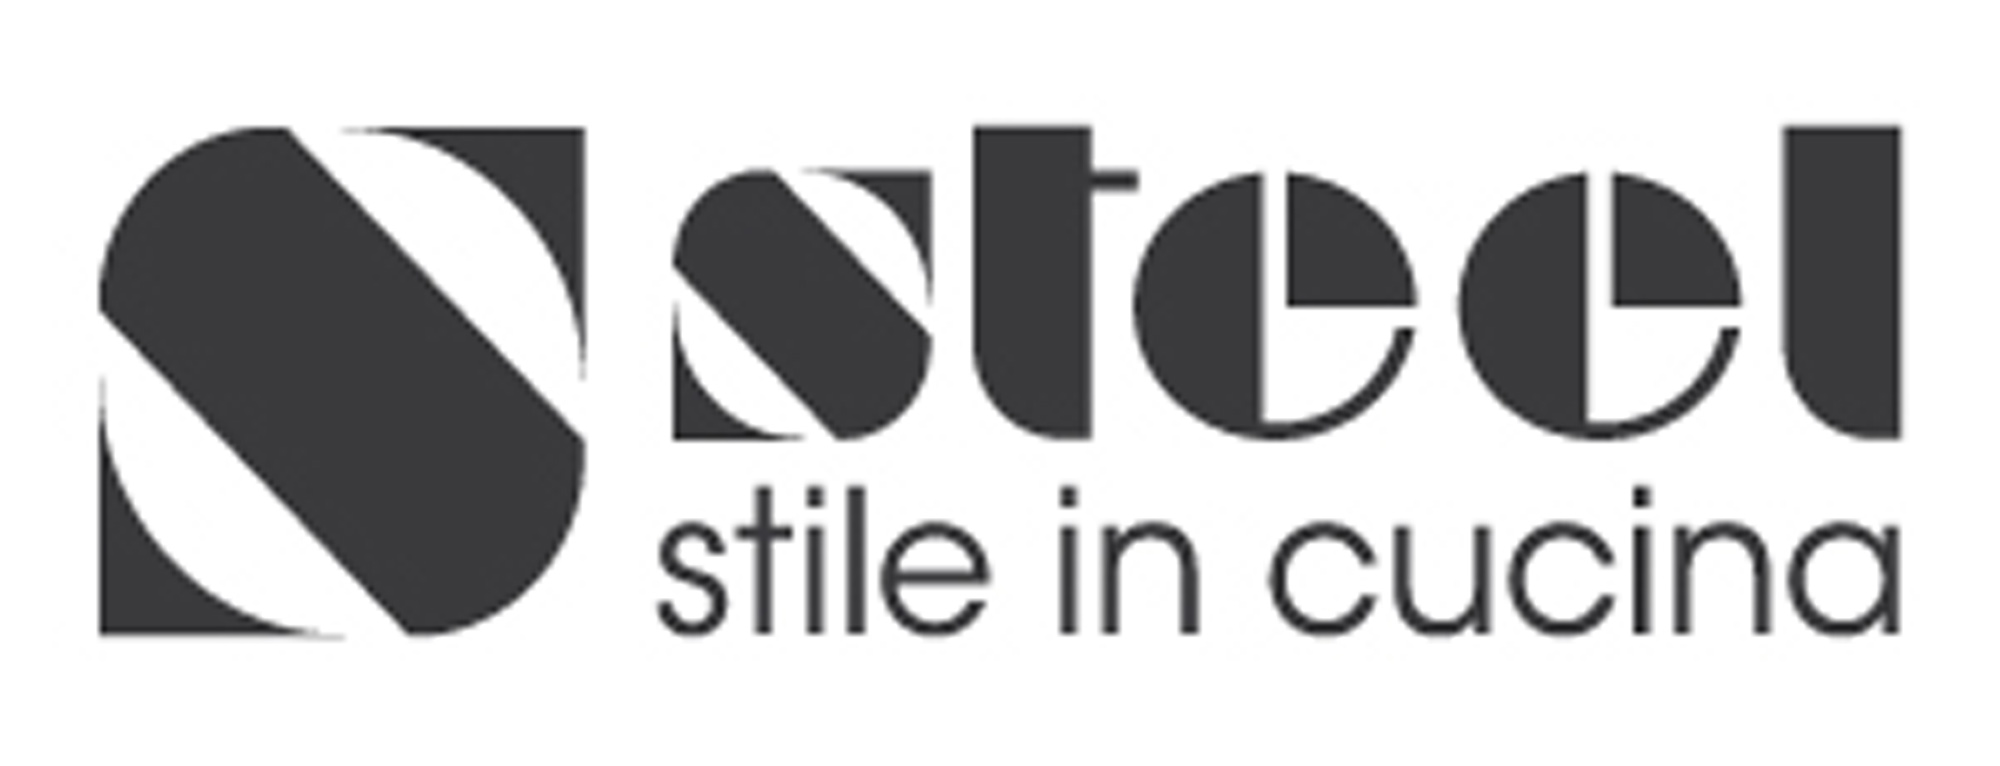 steel-new-logo.jpg